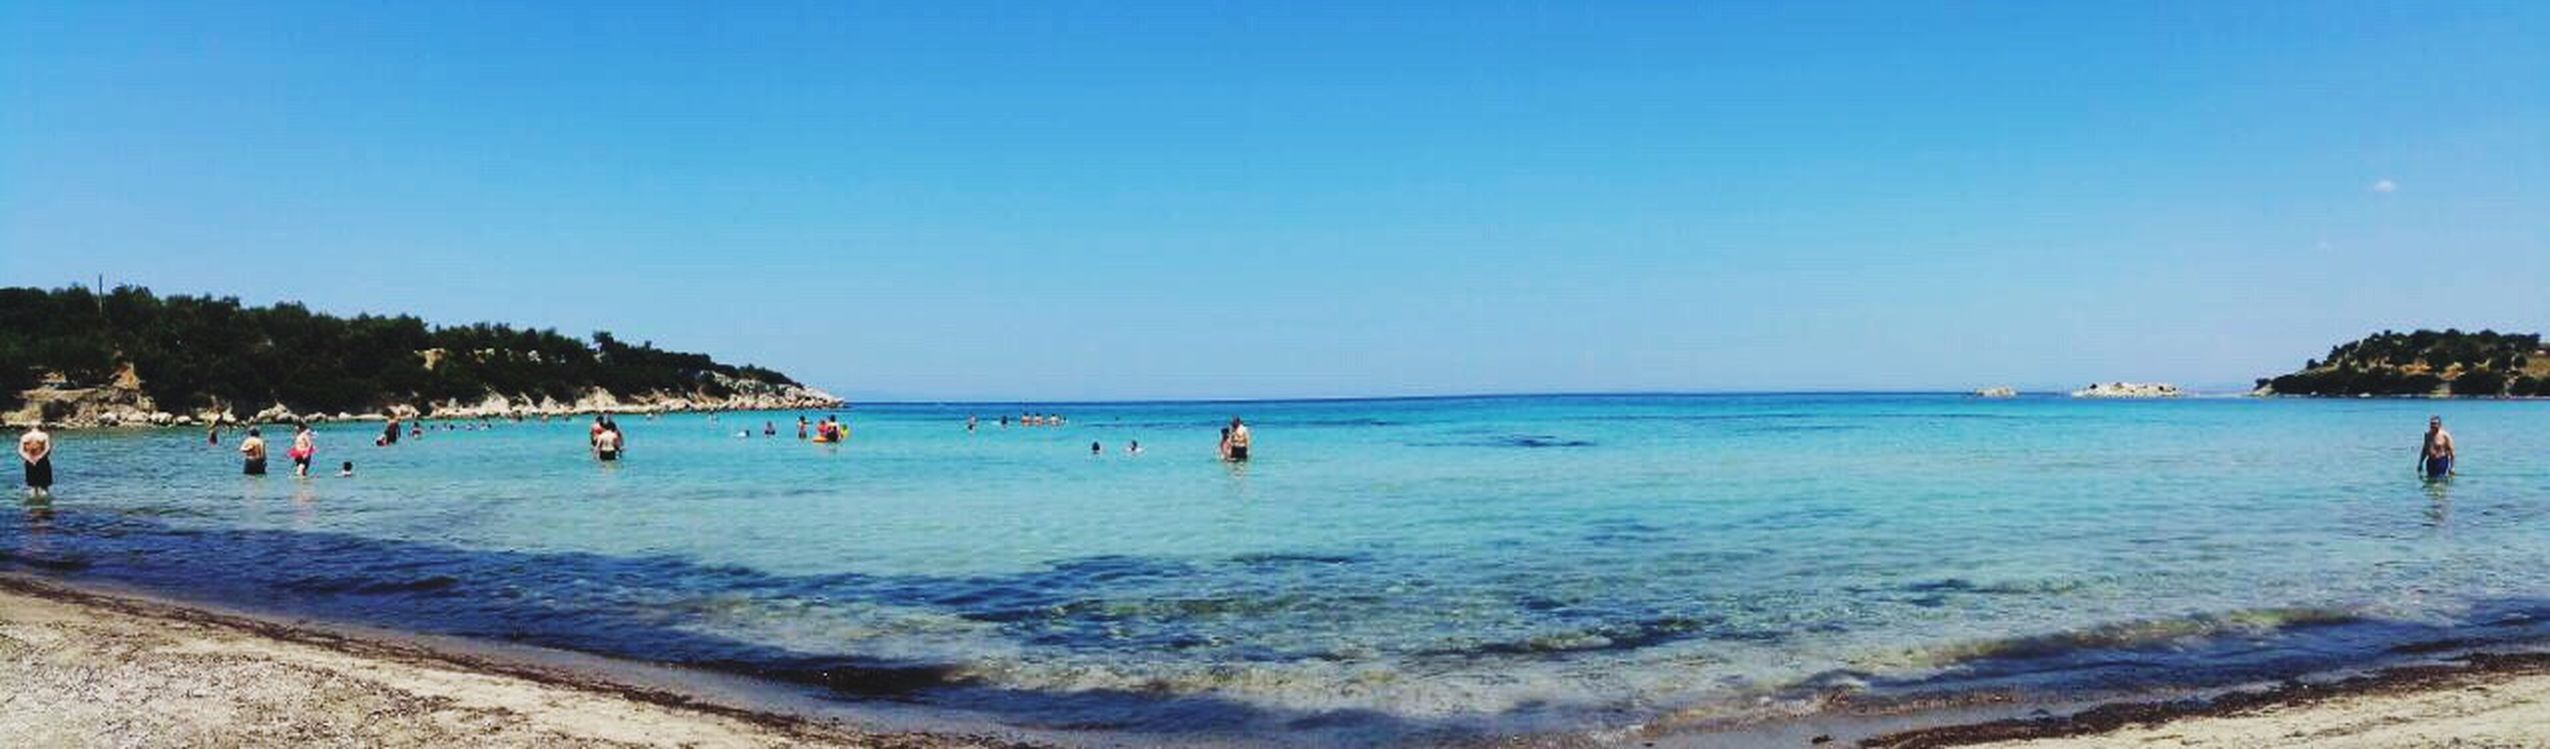 Water Sea Blue Beach Vacations Large Group Of People Beauty In Nature Sky Nature Scenics Outdoors Summer Day Clear Sky Real People Swimming Pool Men Horizon Over Water Tree Swimming